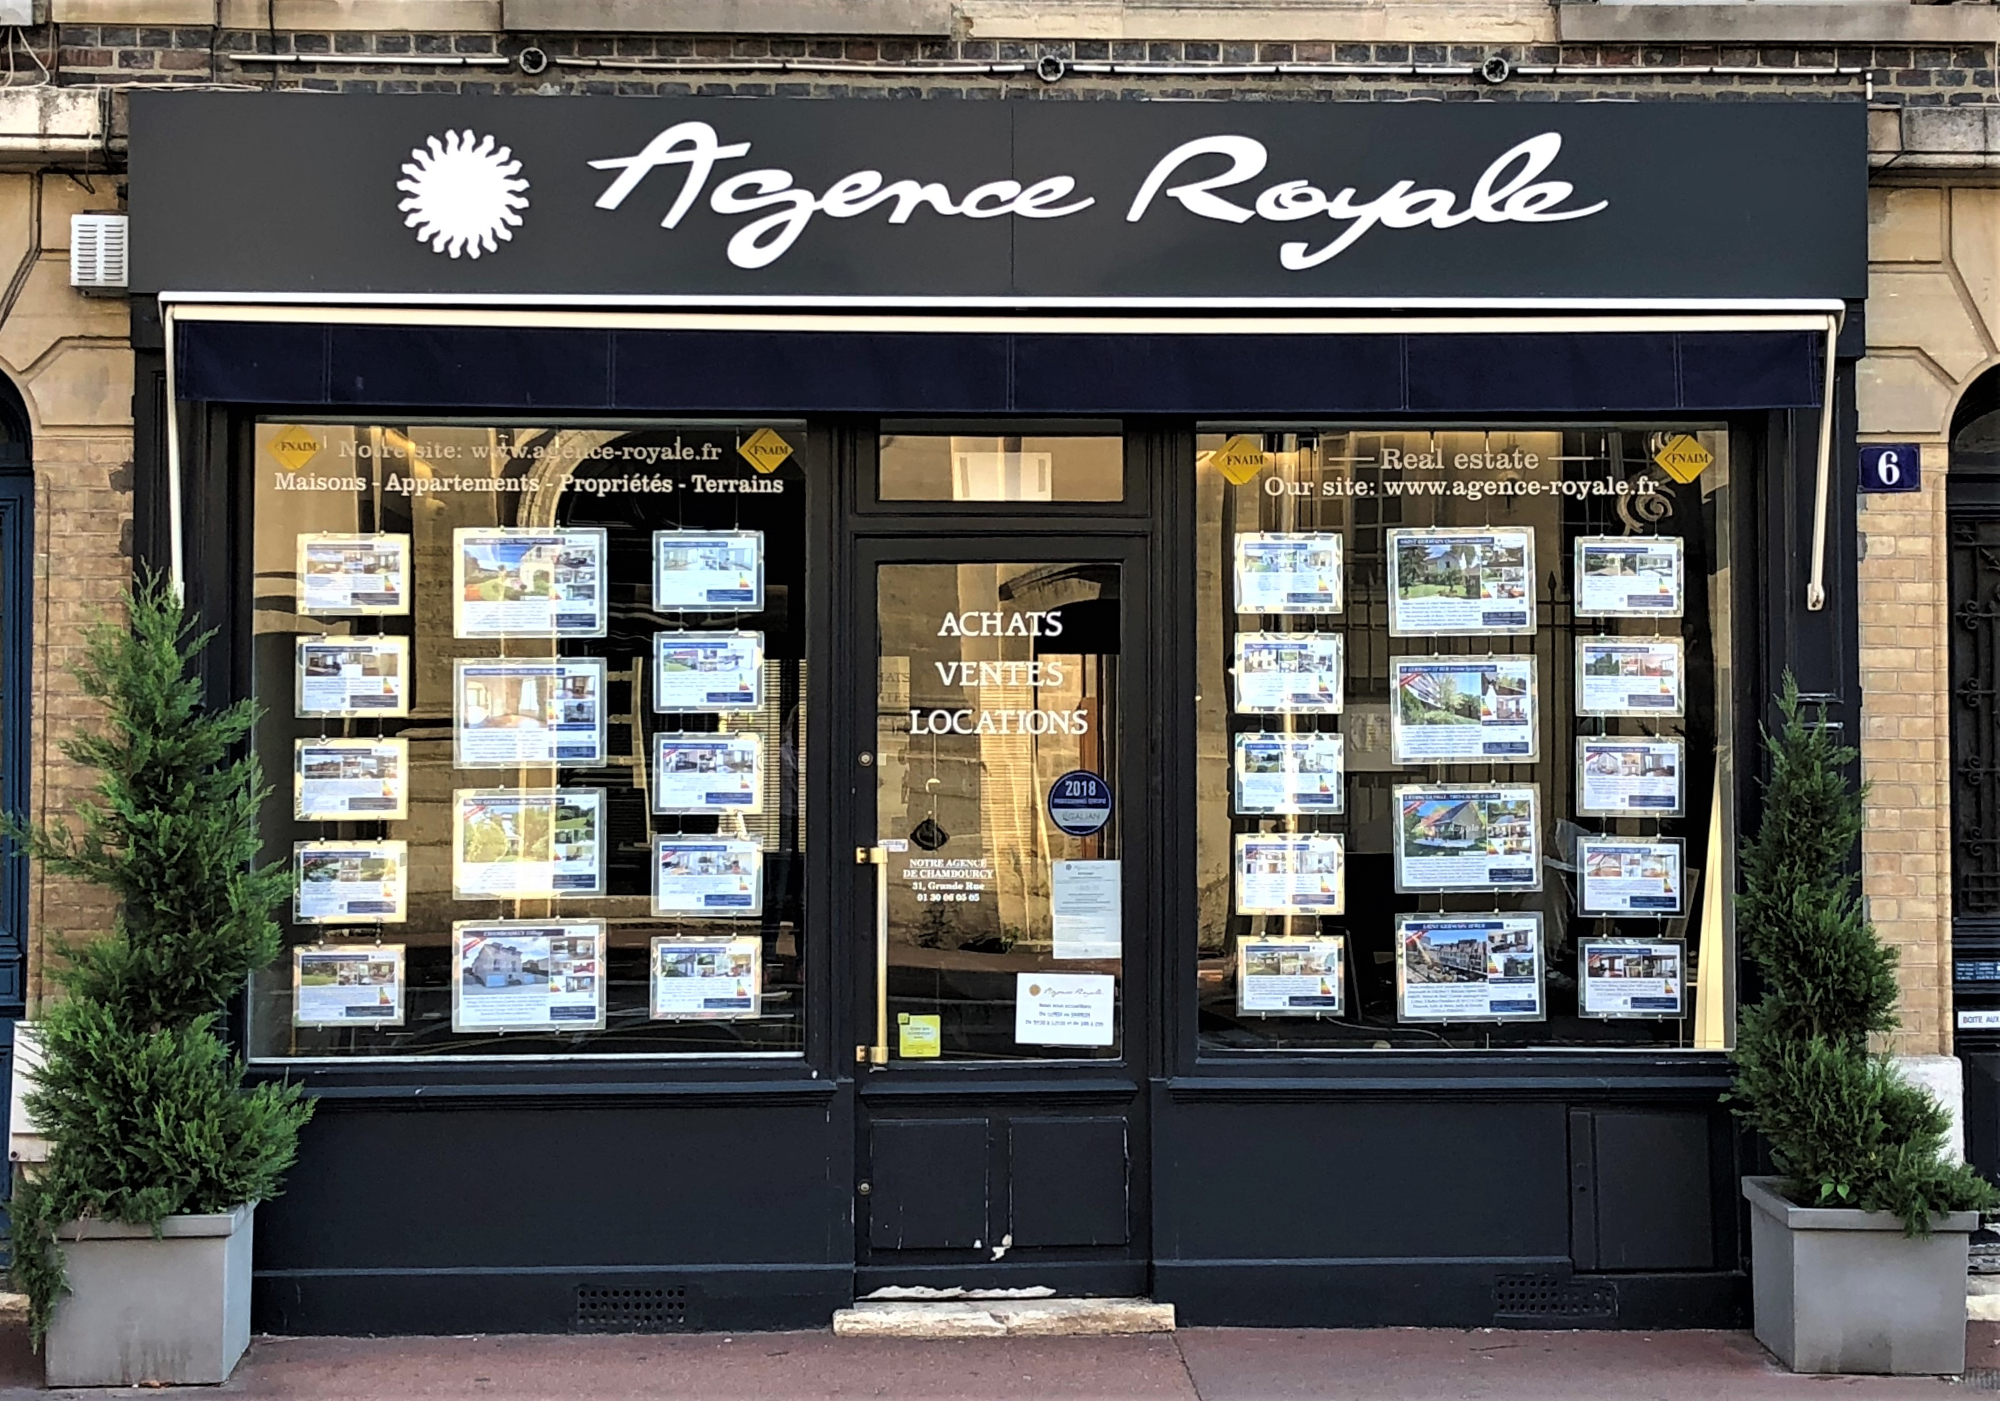 AGENCE ROYALE Saint-Germain / Chambourcy